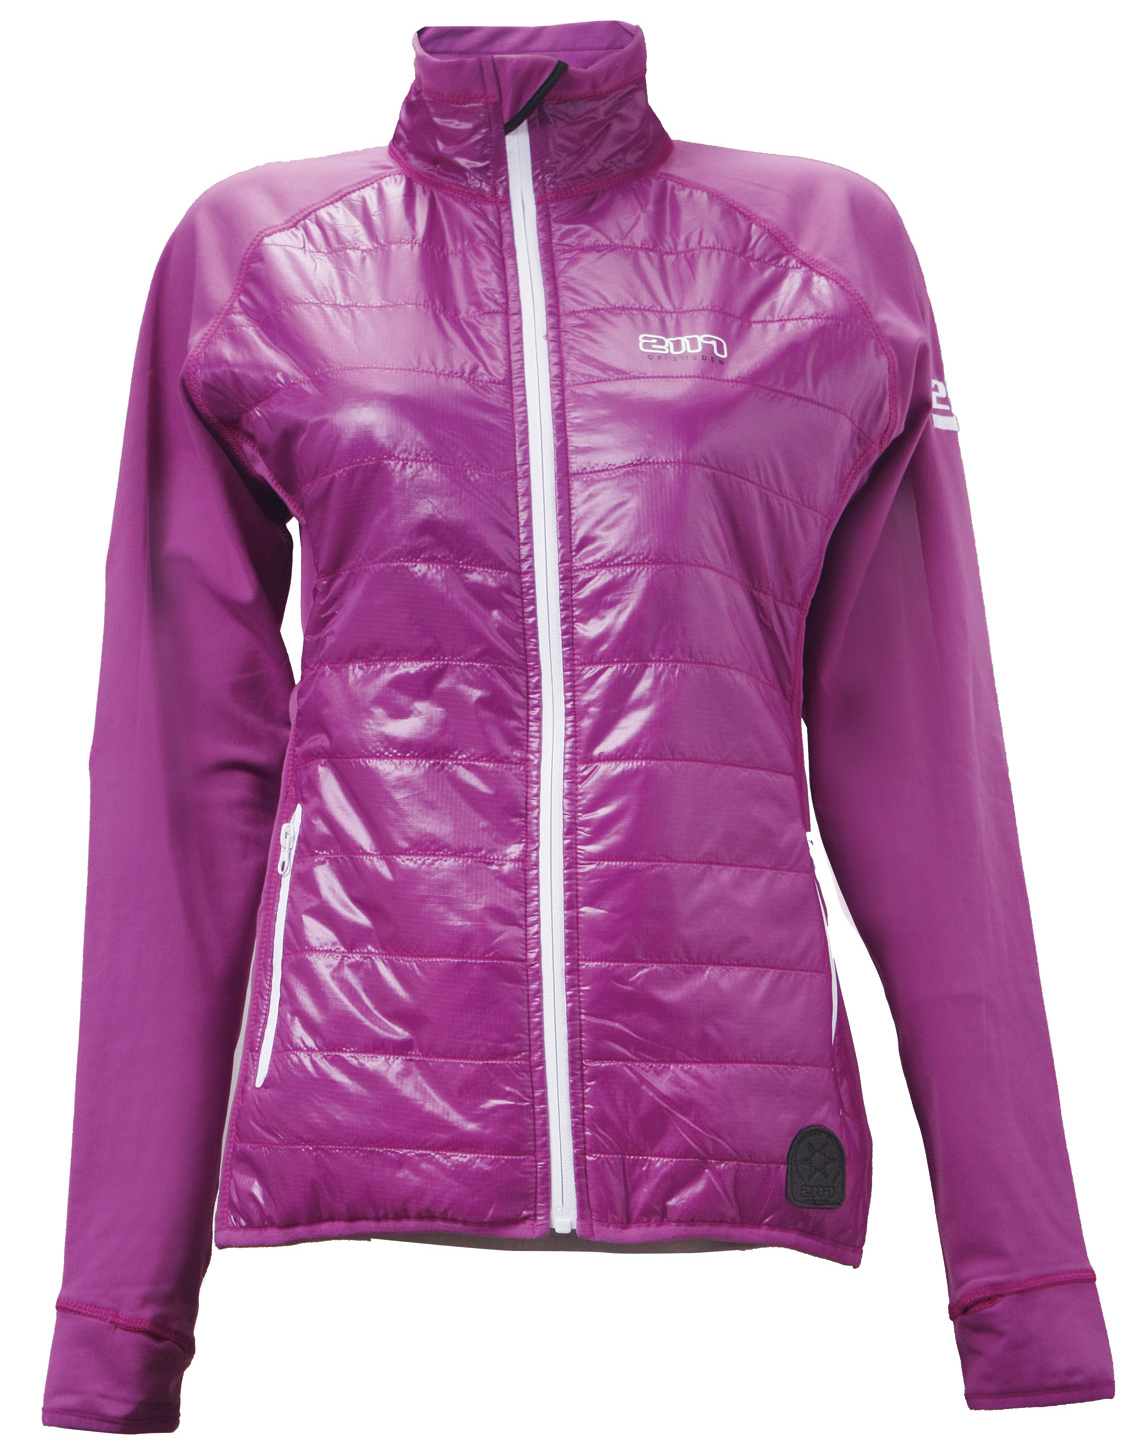 Wear it on cool fall days or layer it under a shell when things get really cold. The Smaland Hybrid has power fleece stretch fabric under and down the arms for fantastic range of motion and comfort while the bodice is lighted insulated and quilted for added warmth. This combination gives the Smaland Hybrid Jacket the look that you just got off the trail and yet you will look like you are ready for dinner out with friends, now that is versatility.Key Features of the 2117 Smaland Jacket: 8,000mm Waterproof 3,000g Breathability Sporty down jacket Two side pockets Elastic trimming in sleeve end, hood and waist 80/ 20 down of European first class qulity Wind and water resistant - $50.95